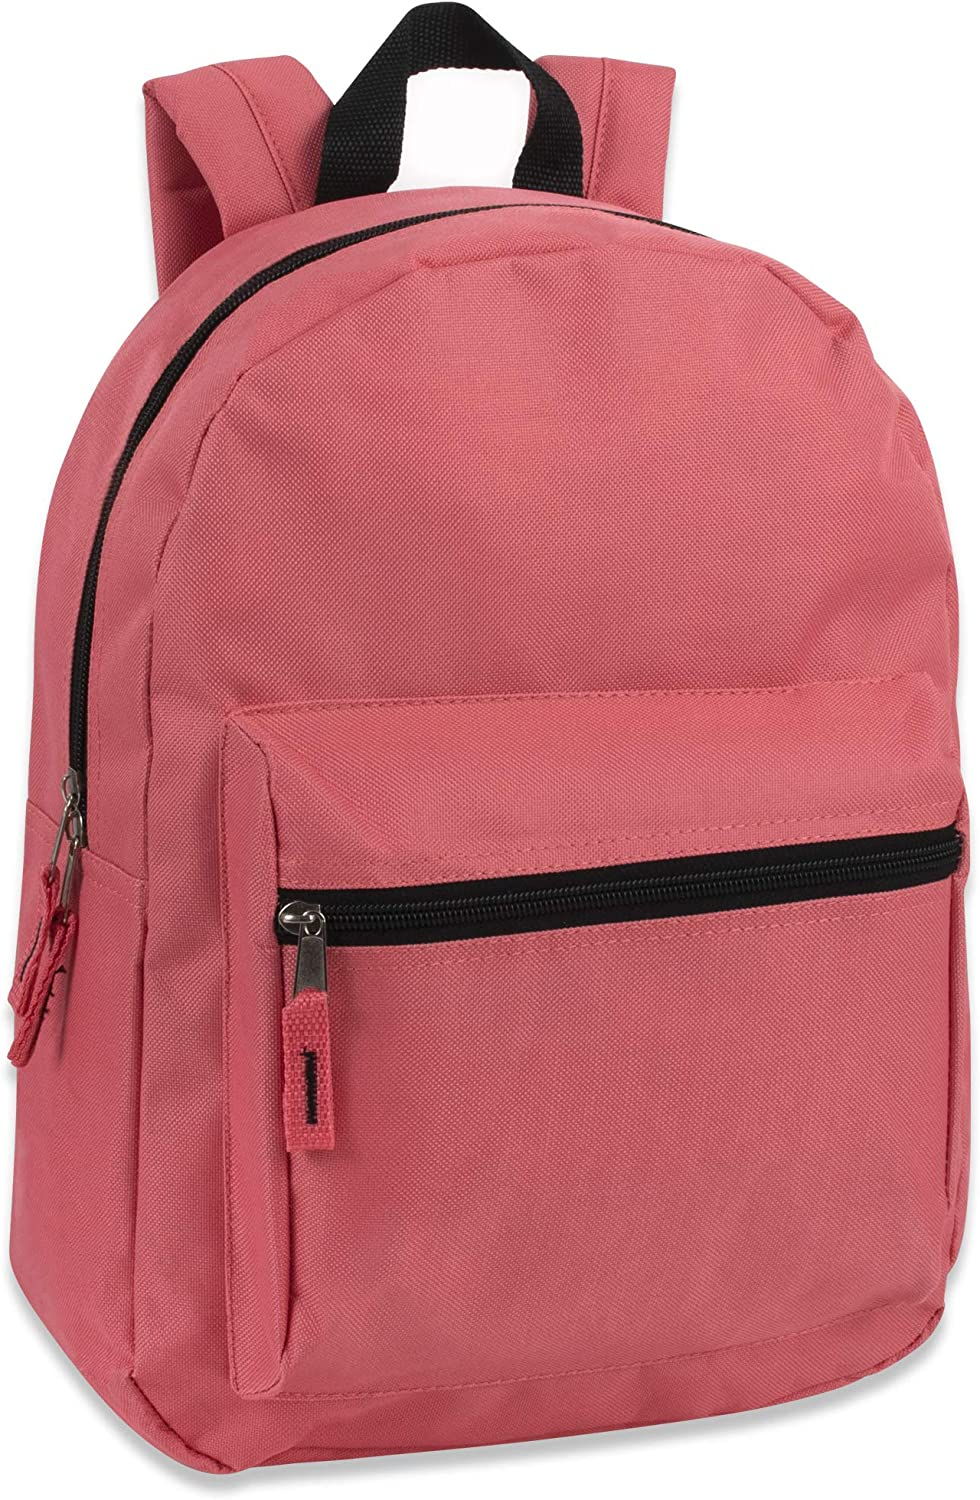 12 Color Assortment 15 Inch Solid Backpacks For Kids With Padded Straps Wholesale Bulk Case Pack Of 24